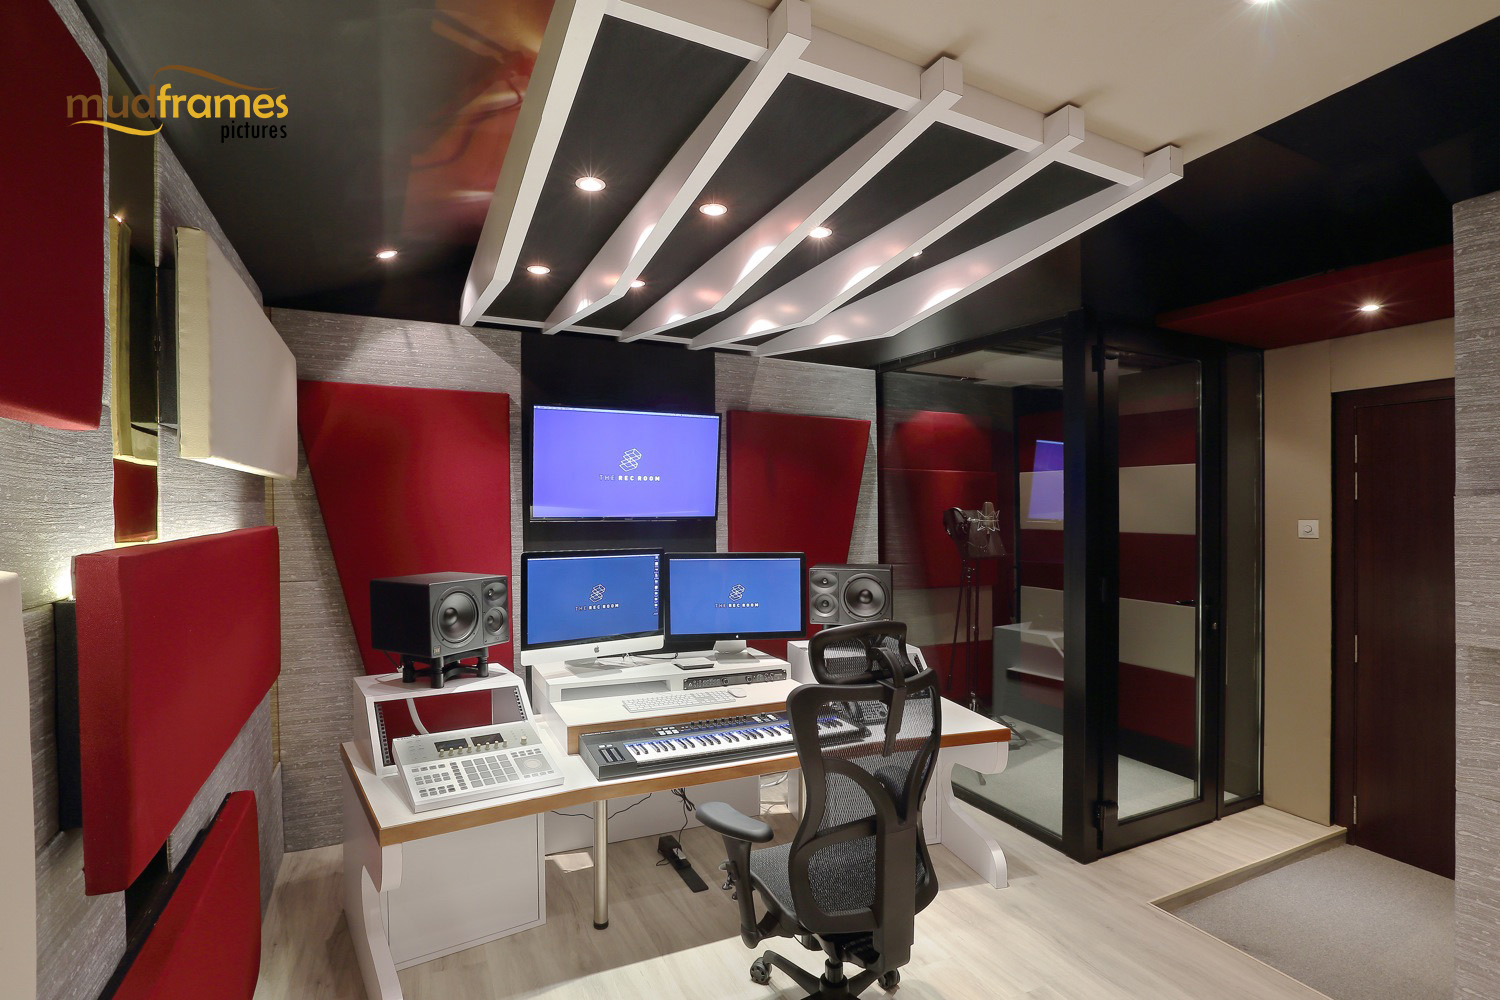 The Rec Room music sound recording studio in Jalan Beka, Damansara Heights